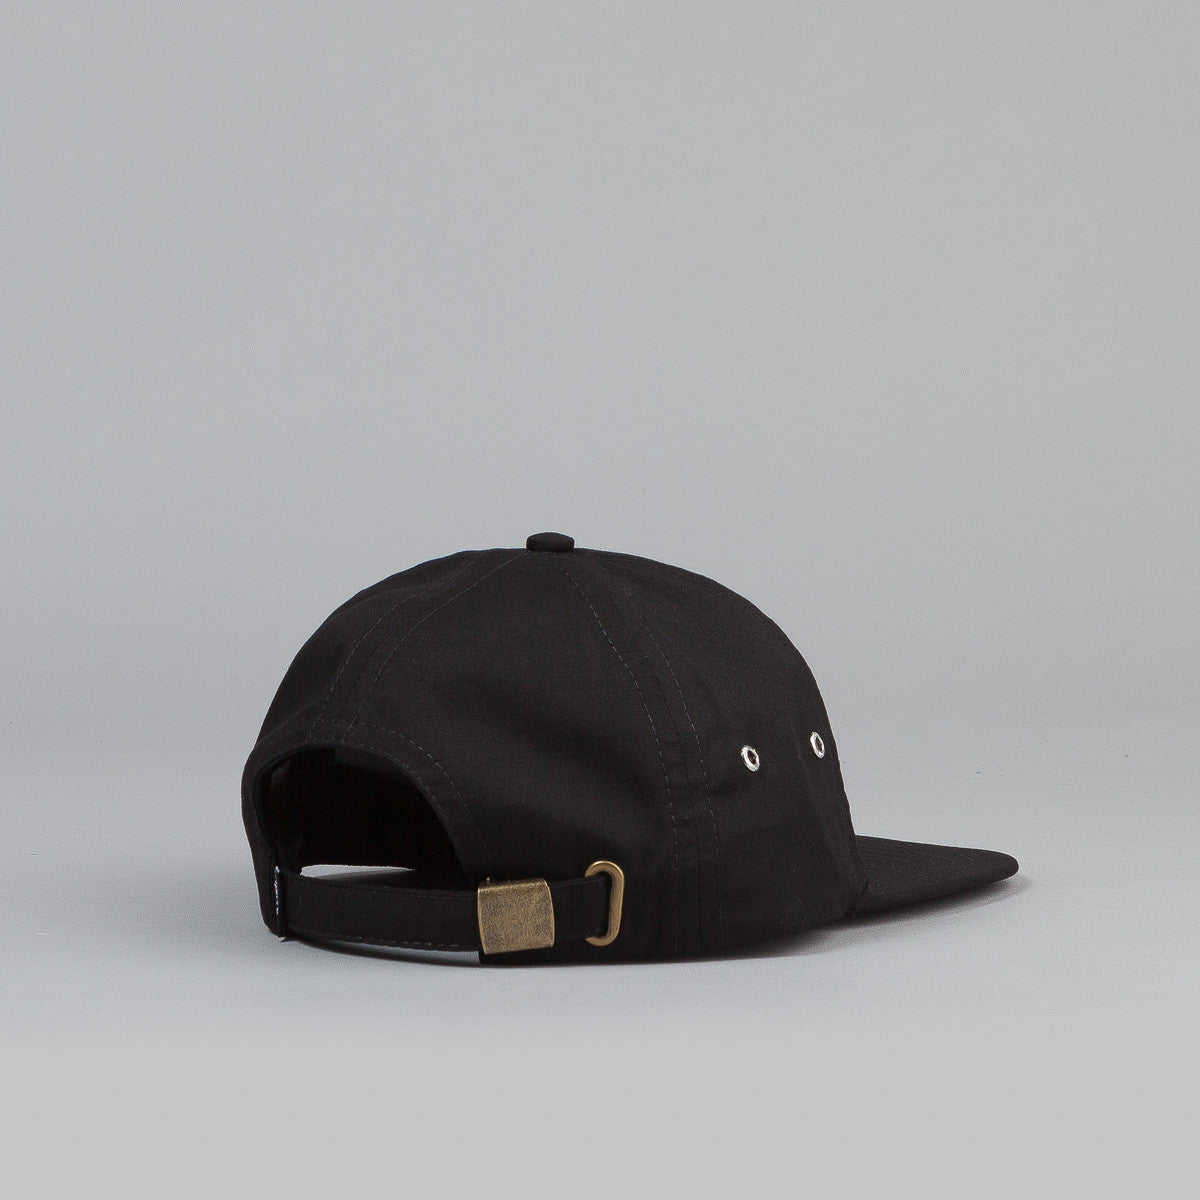 Rip N Dip Neighbourhood Watch 6 Panel Cap - Black